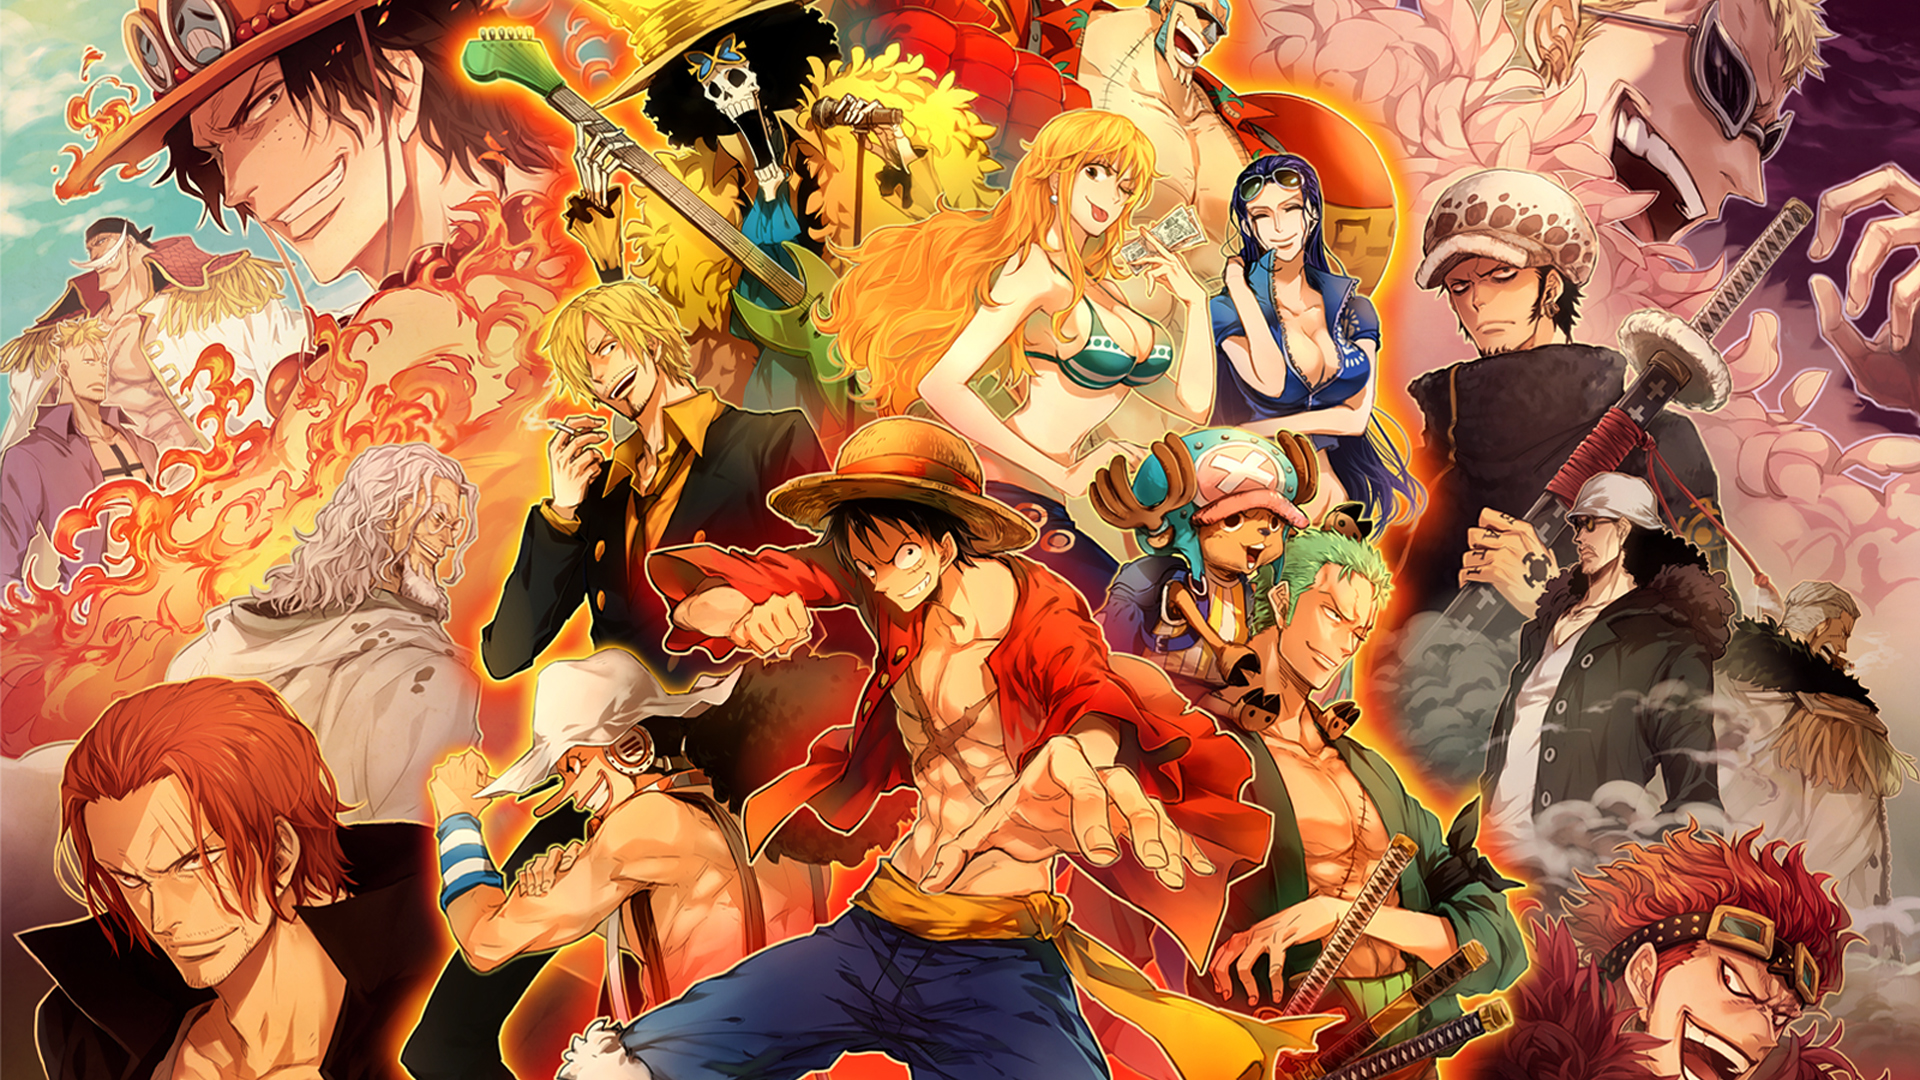 All-Character-Anime-Movie-One-Piece-For-Desktop-HD-wallpaper-wp3402259